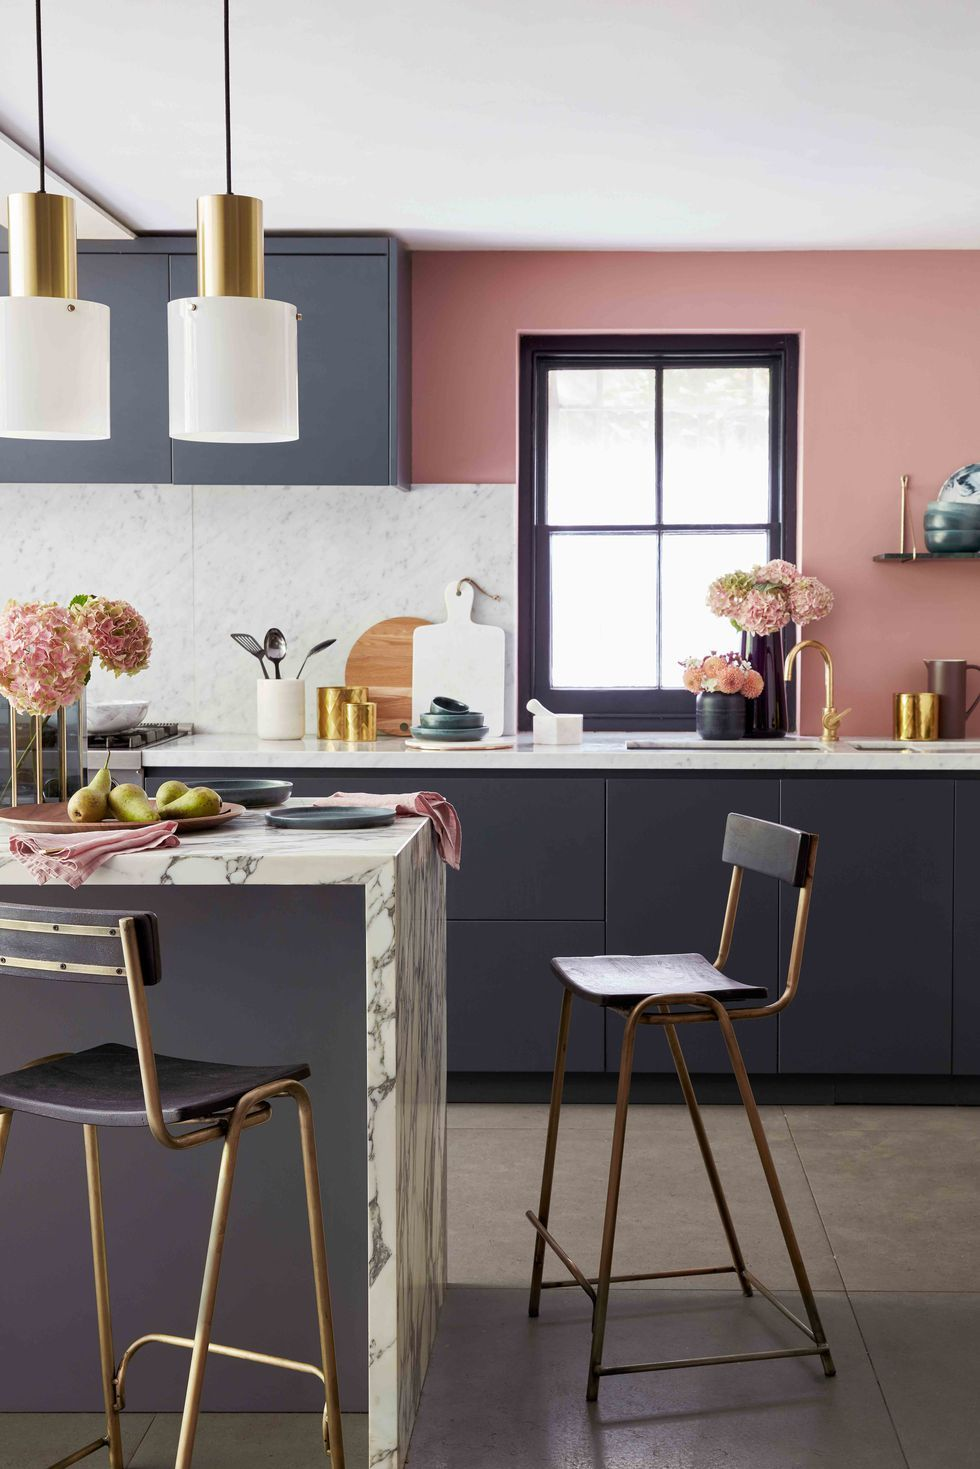 20 Kitchen Trends For 2020 You Need To Know About Kitchen Design